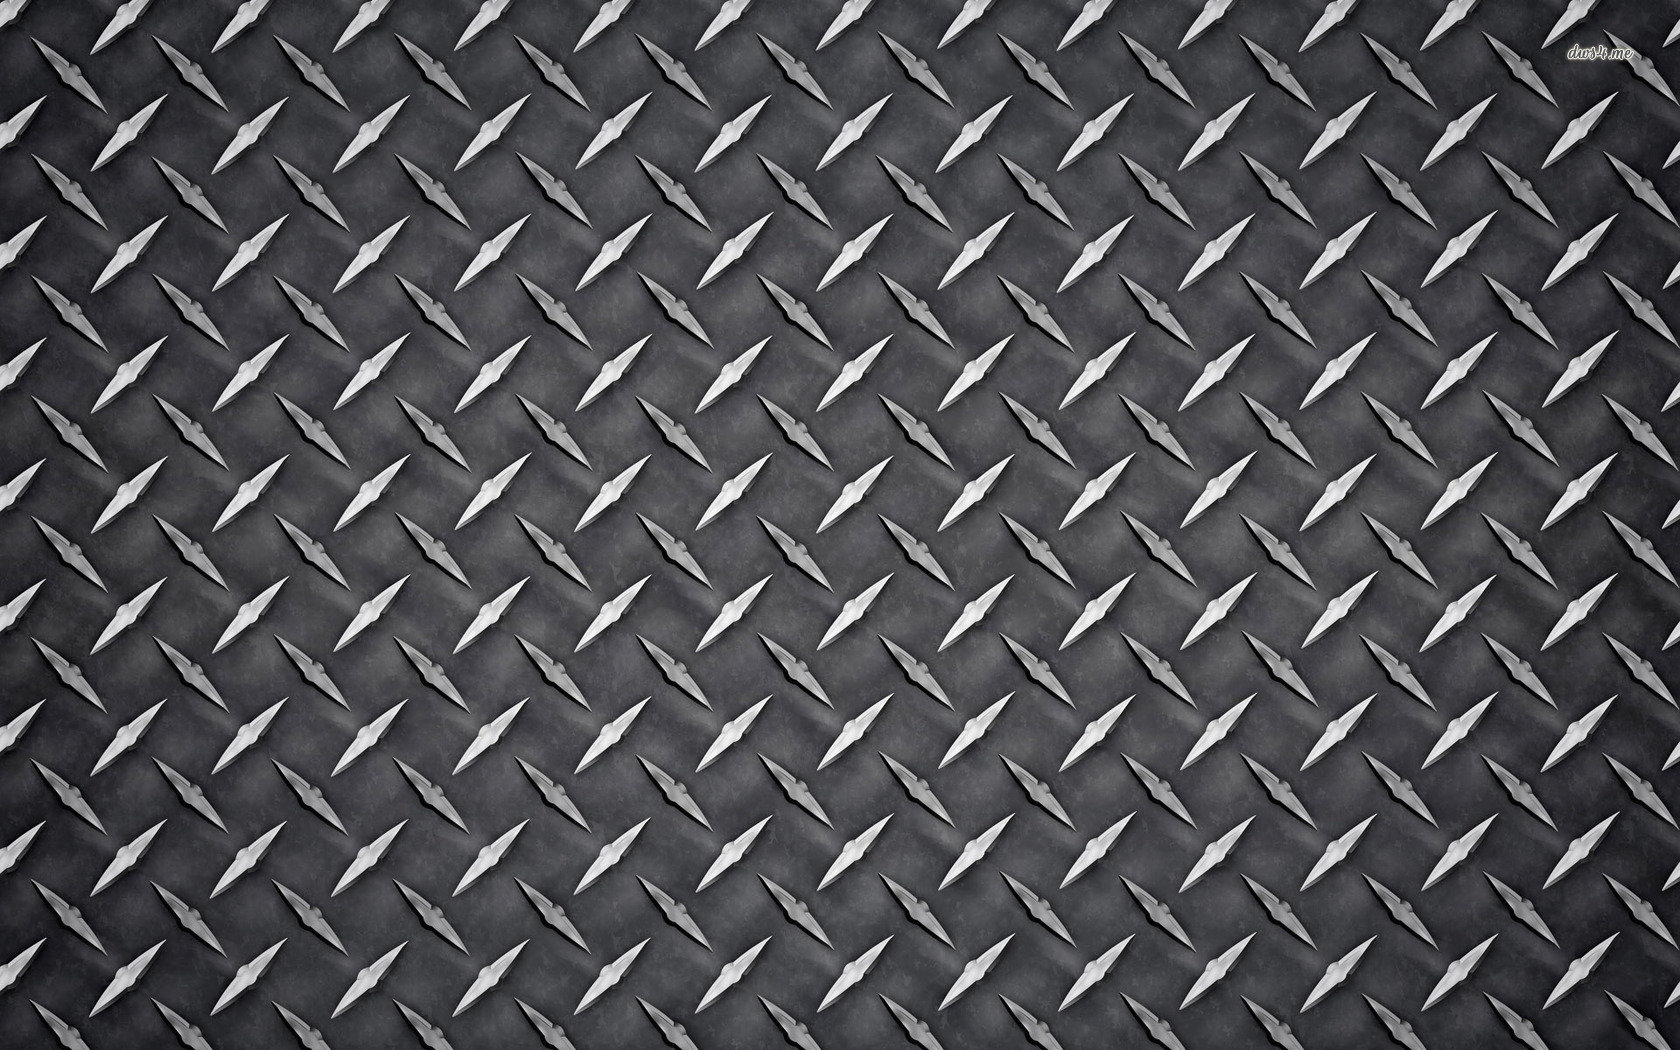 Metallic wallpaper 1680x1050 71281 for Metallic wallpaper